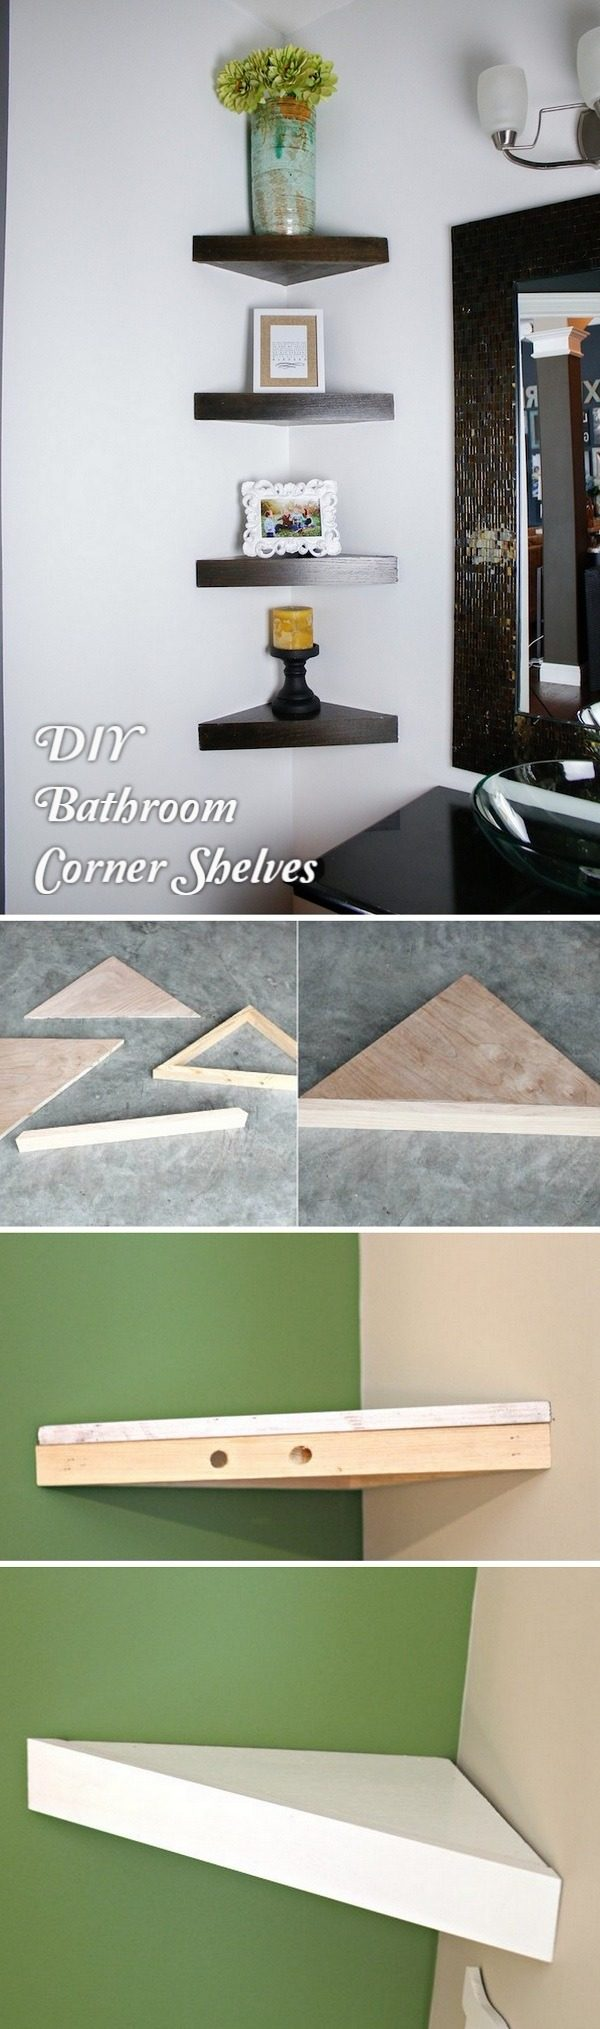 Check out how to build a #DIY corner shelf for a small bathroom #HomeDecorIdeas #BathroomDesign